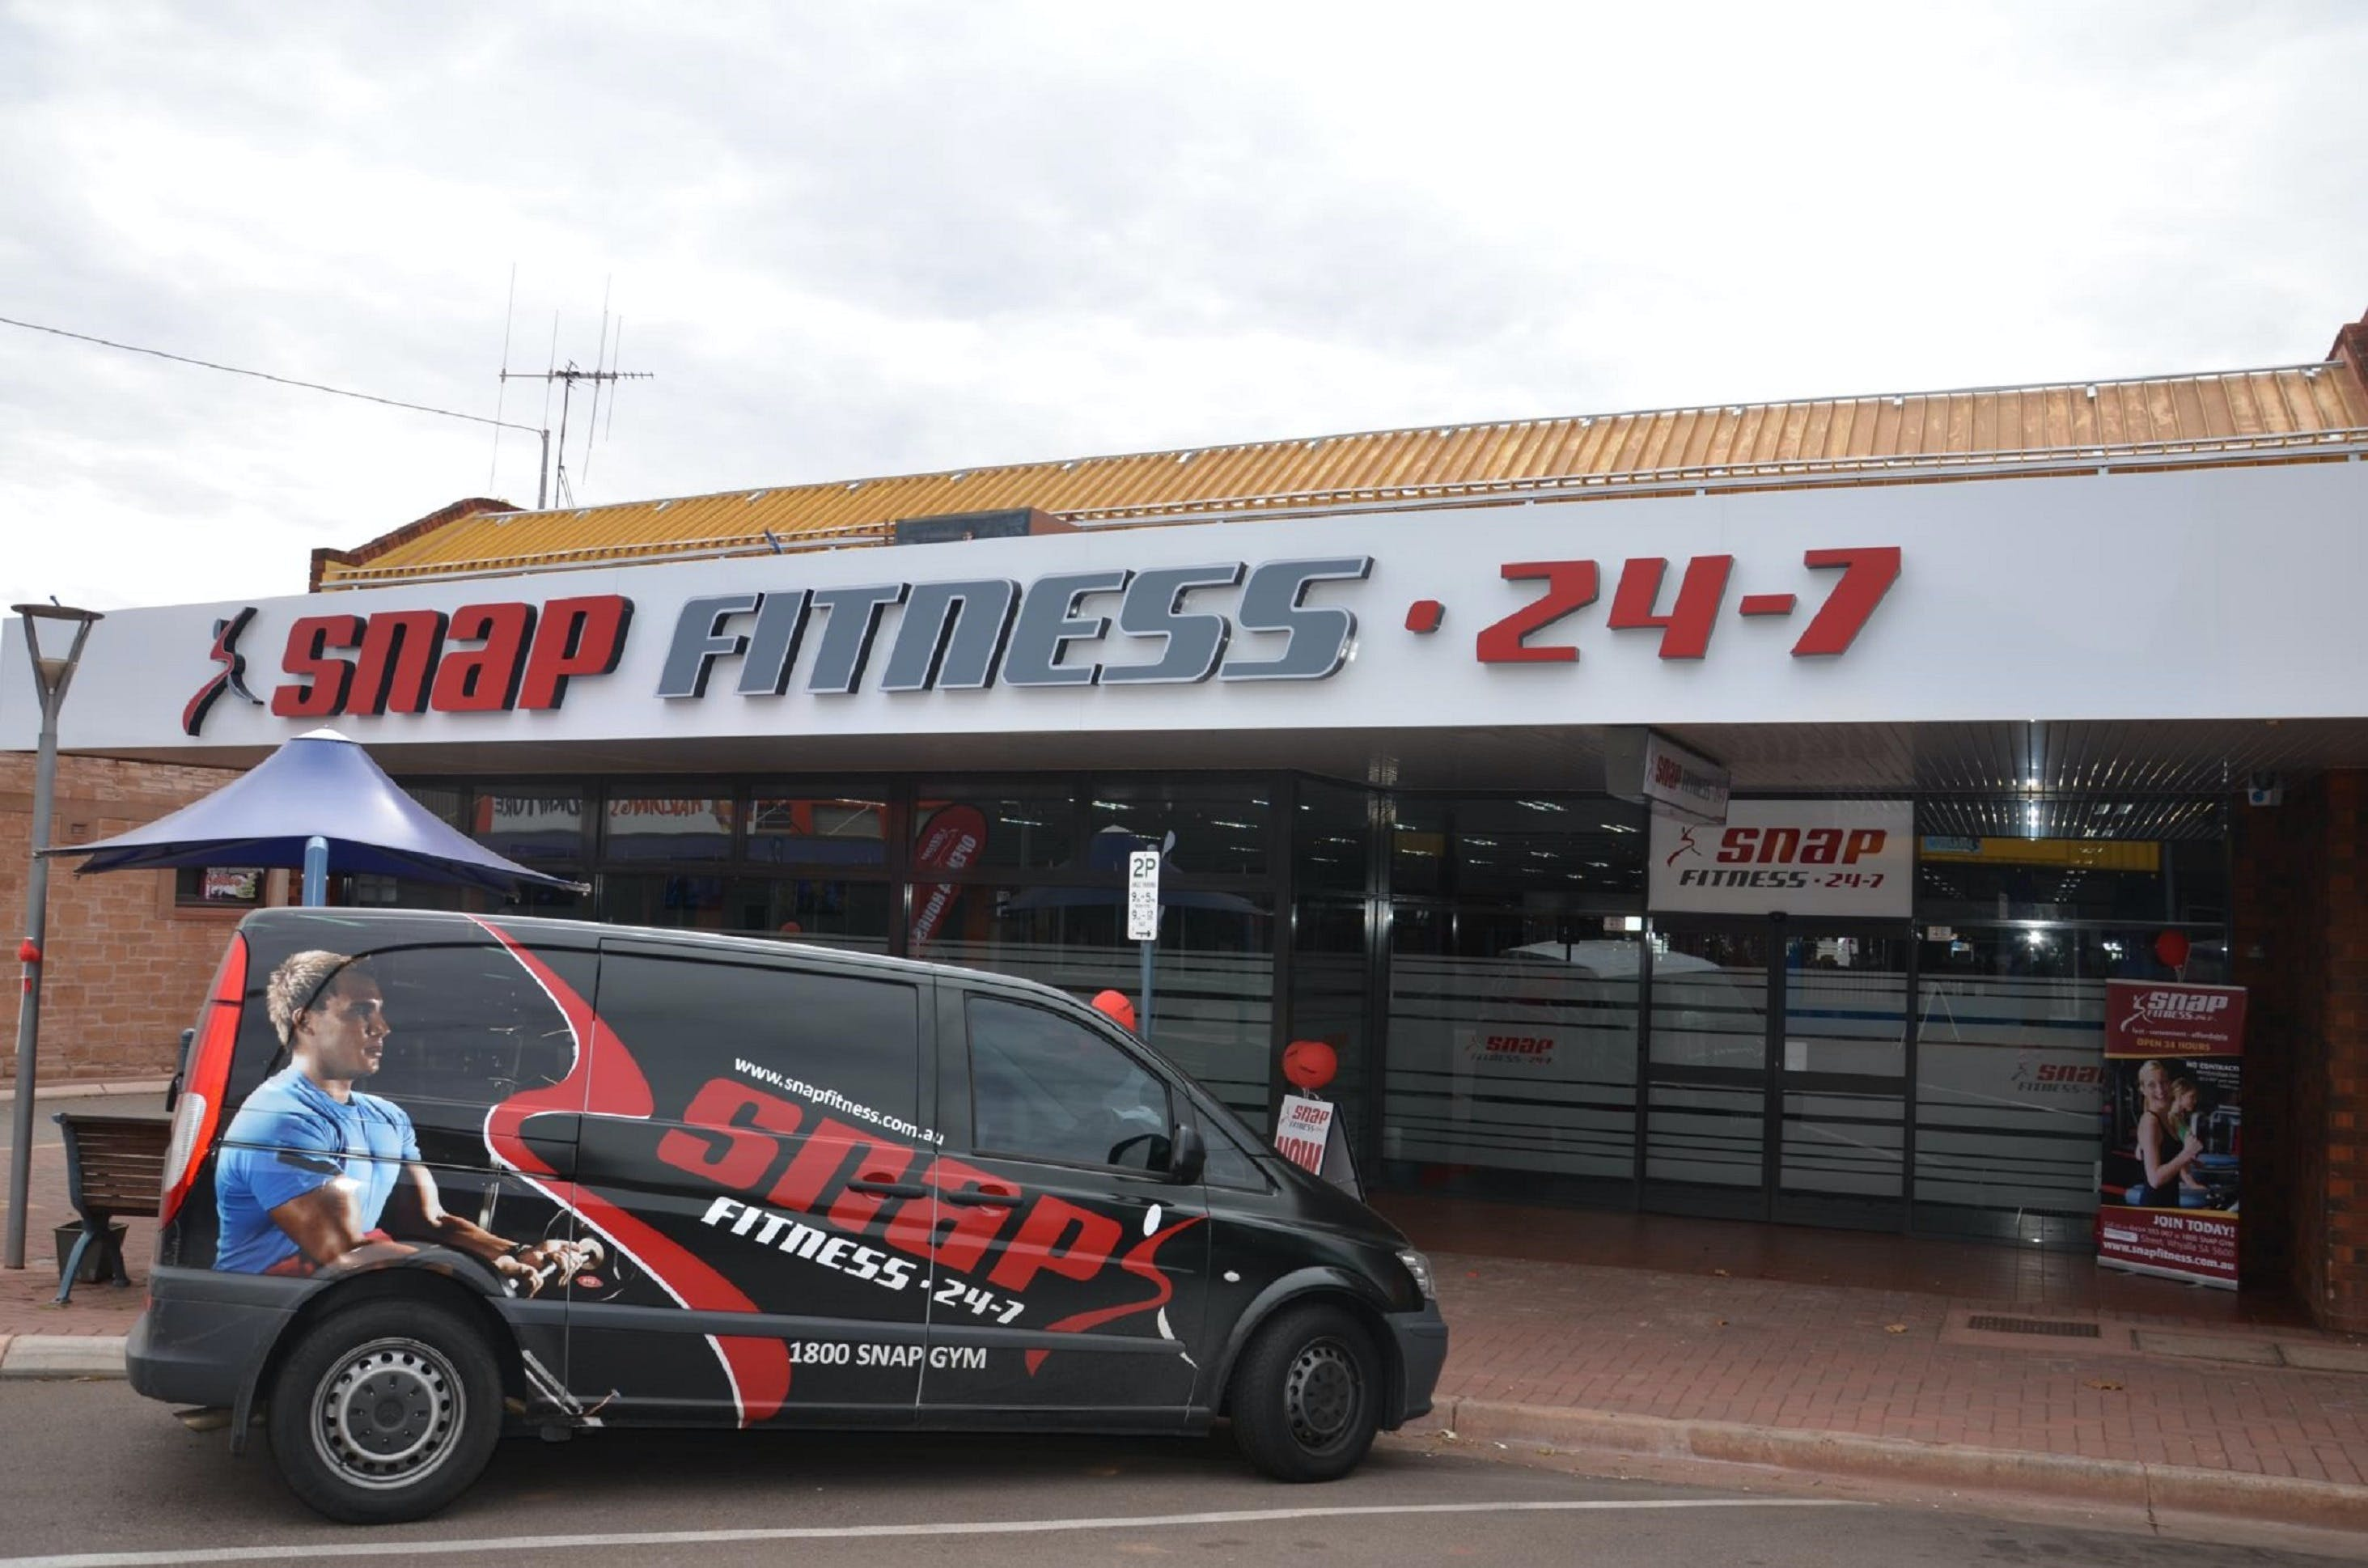 Snap Fitness Whyalla 24/7 gym - Melbourne Tourism